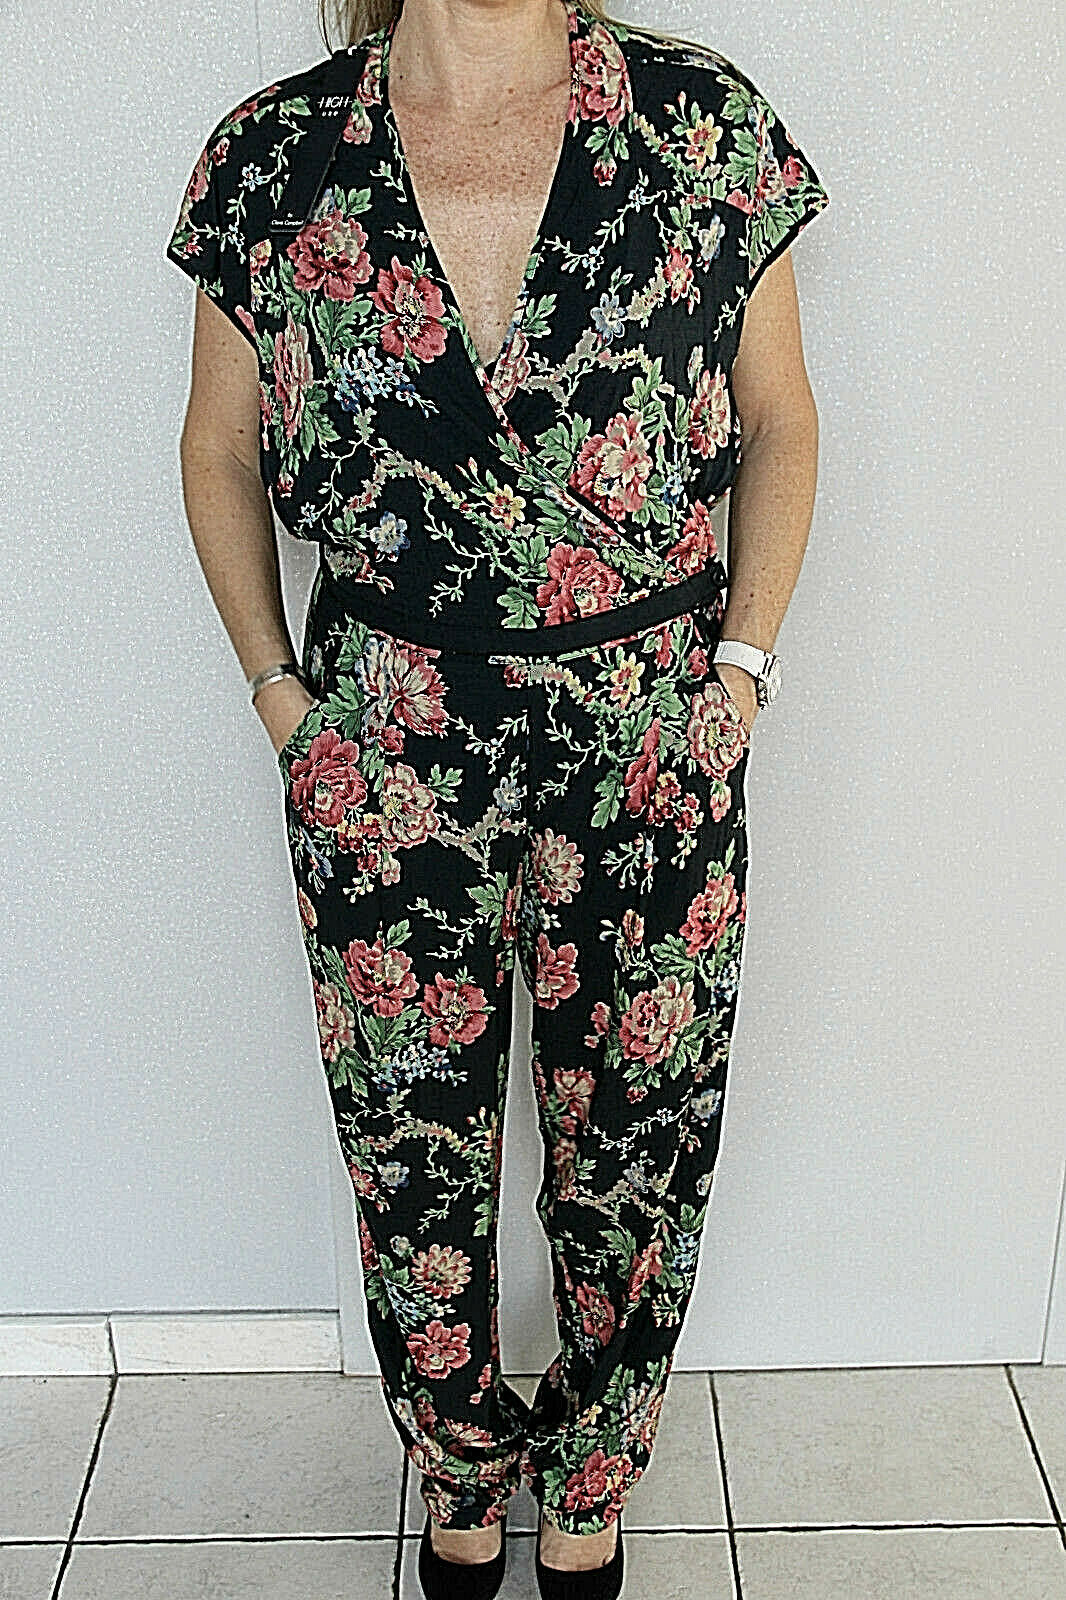 Ensemble fleuri viscose stretch HIGH USE by claire campbell 36 fr NEUF val